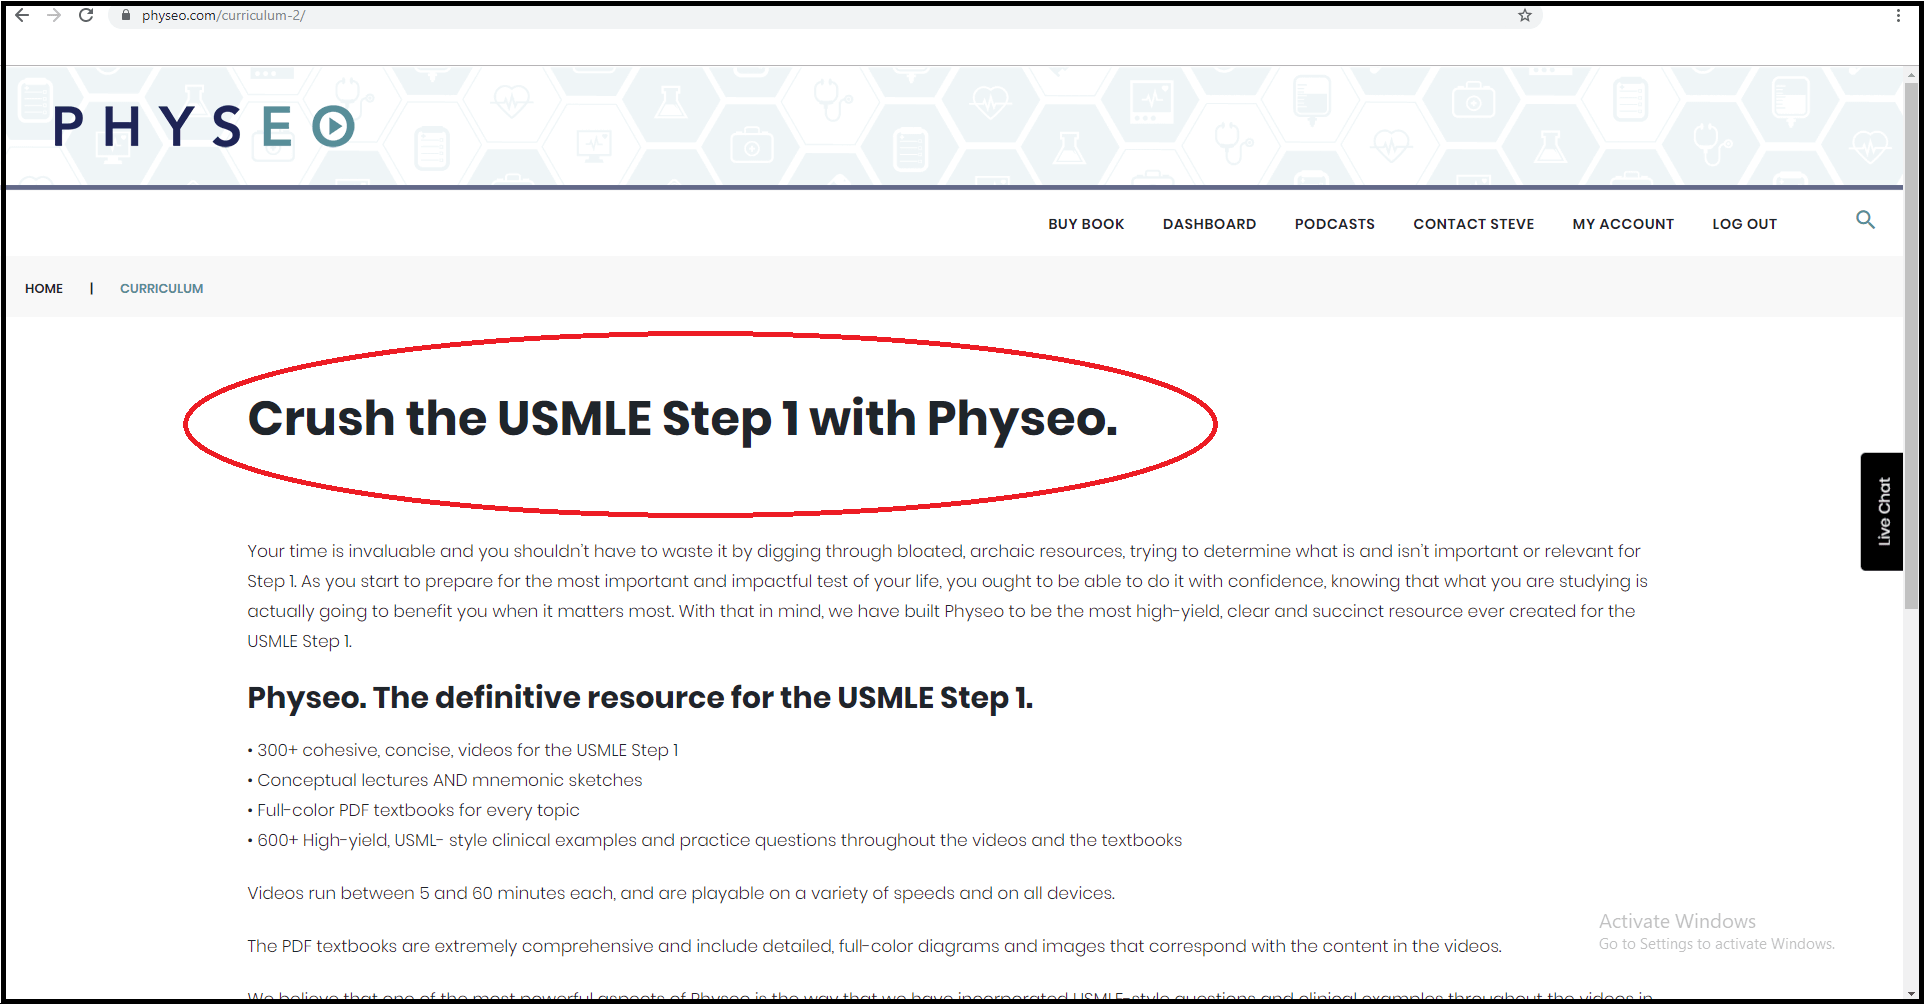 Step 1 Resources - Physeo curriculum